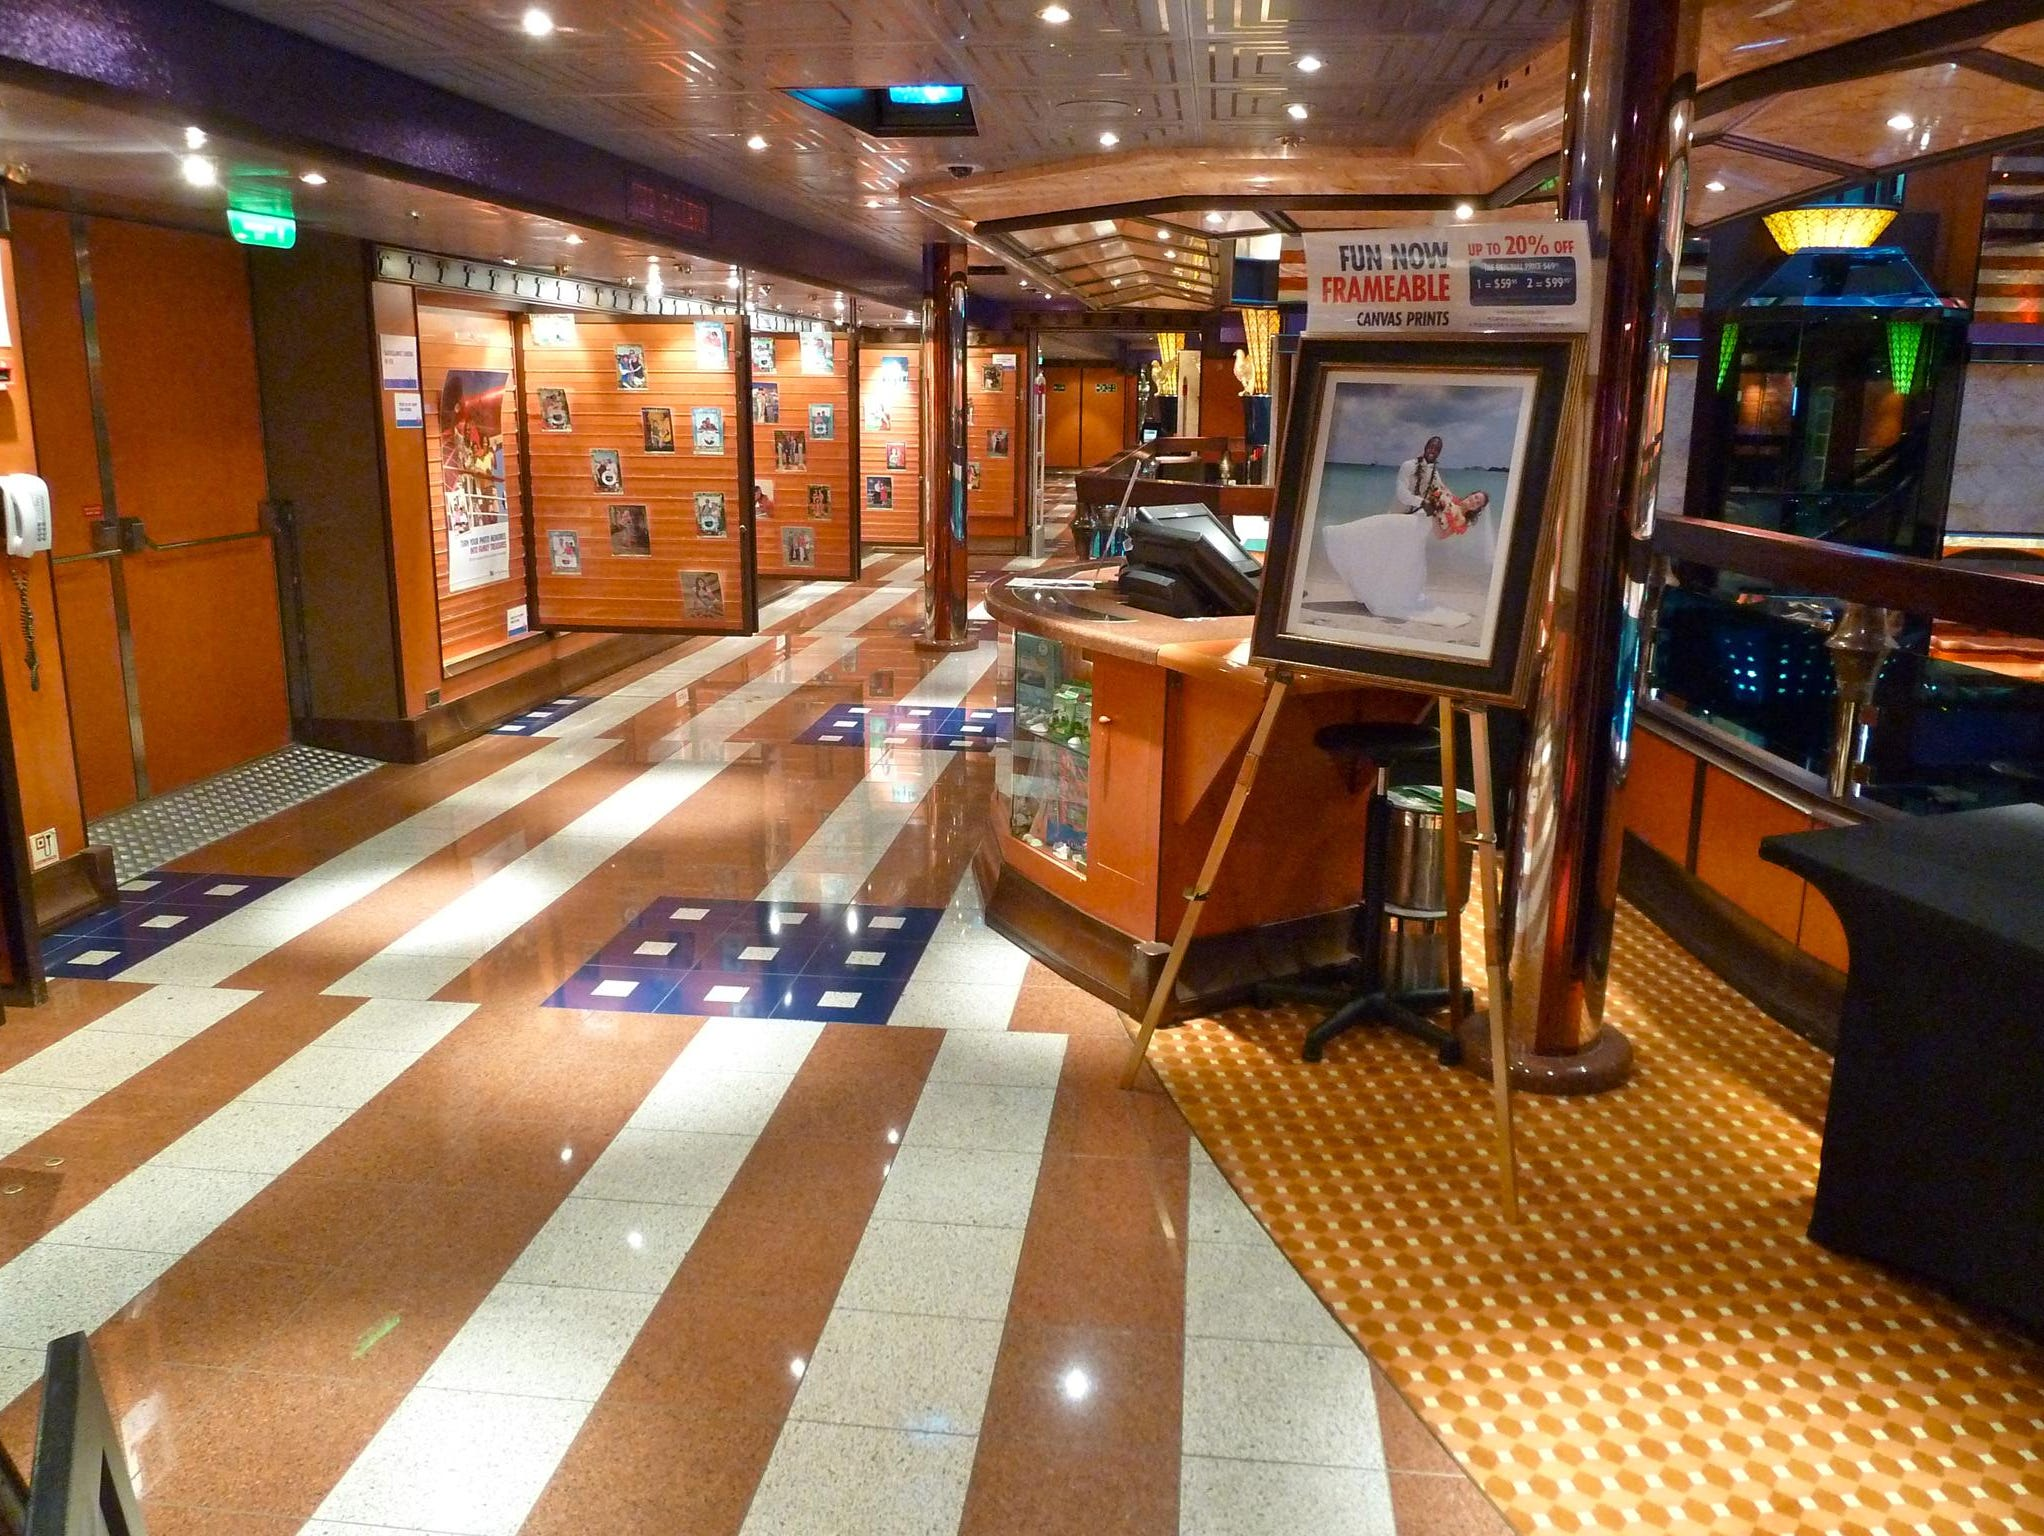 A photo gallery is also in the small cluster of spaces on the aft side of the Deck 4 Atrium America balcony.